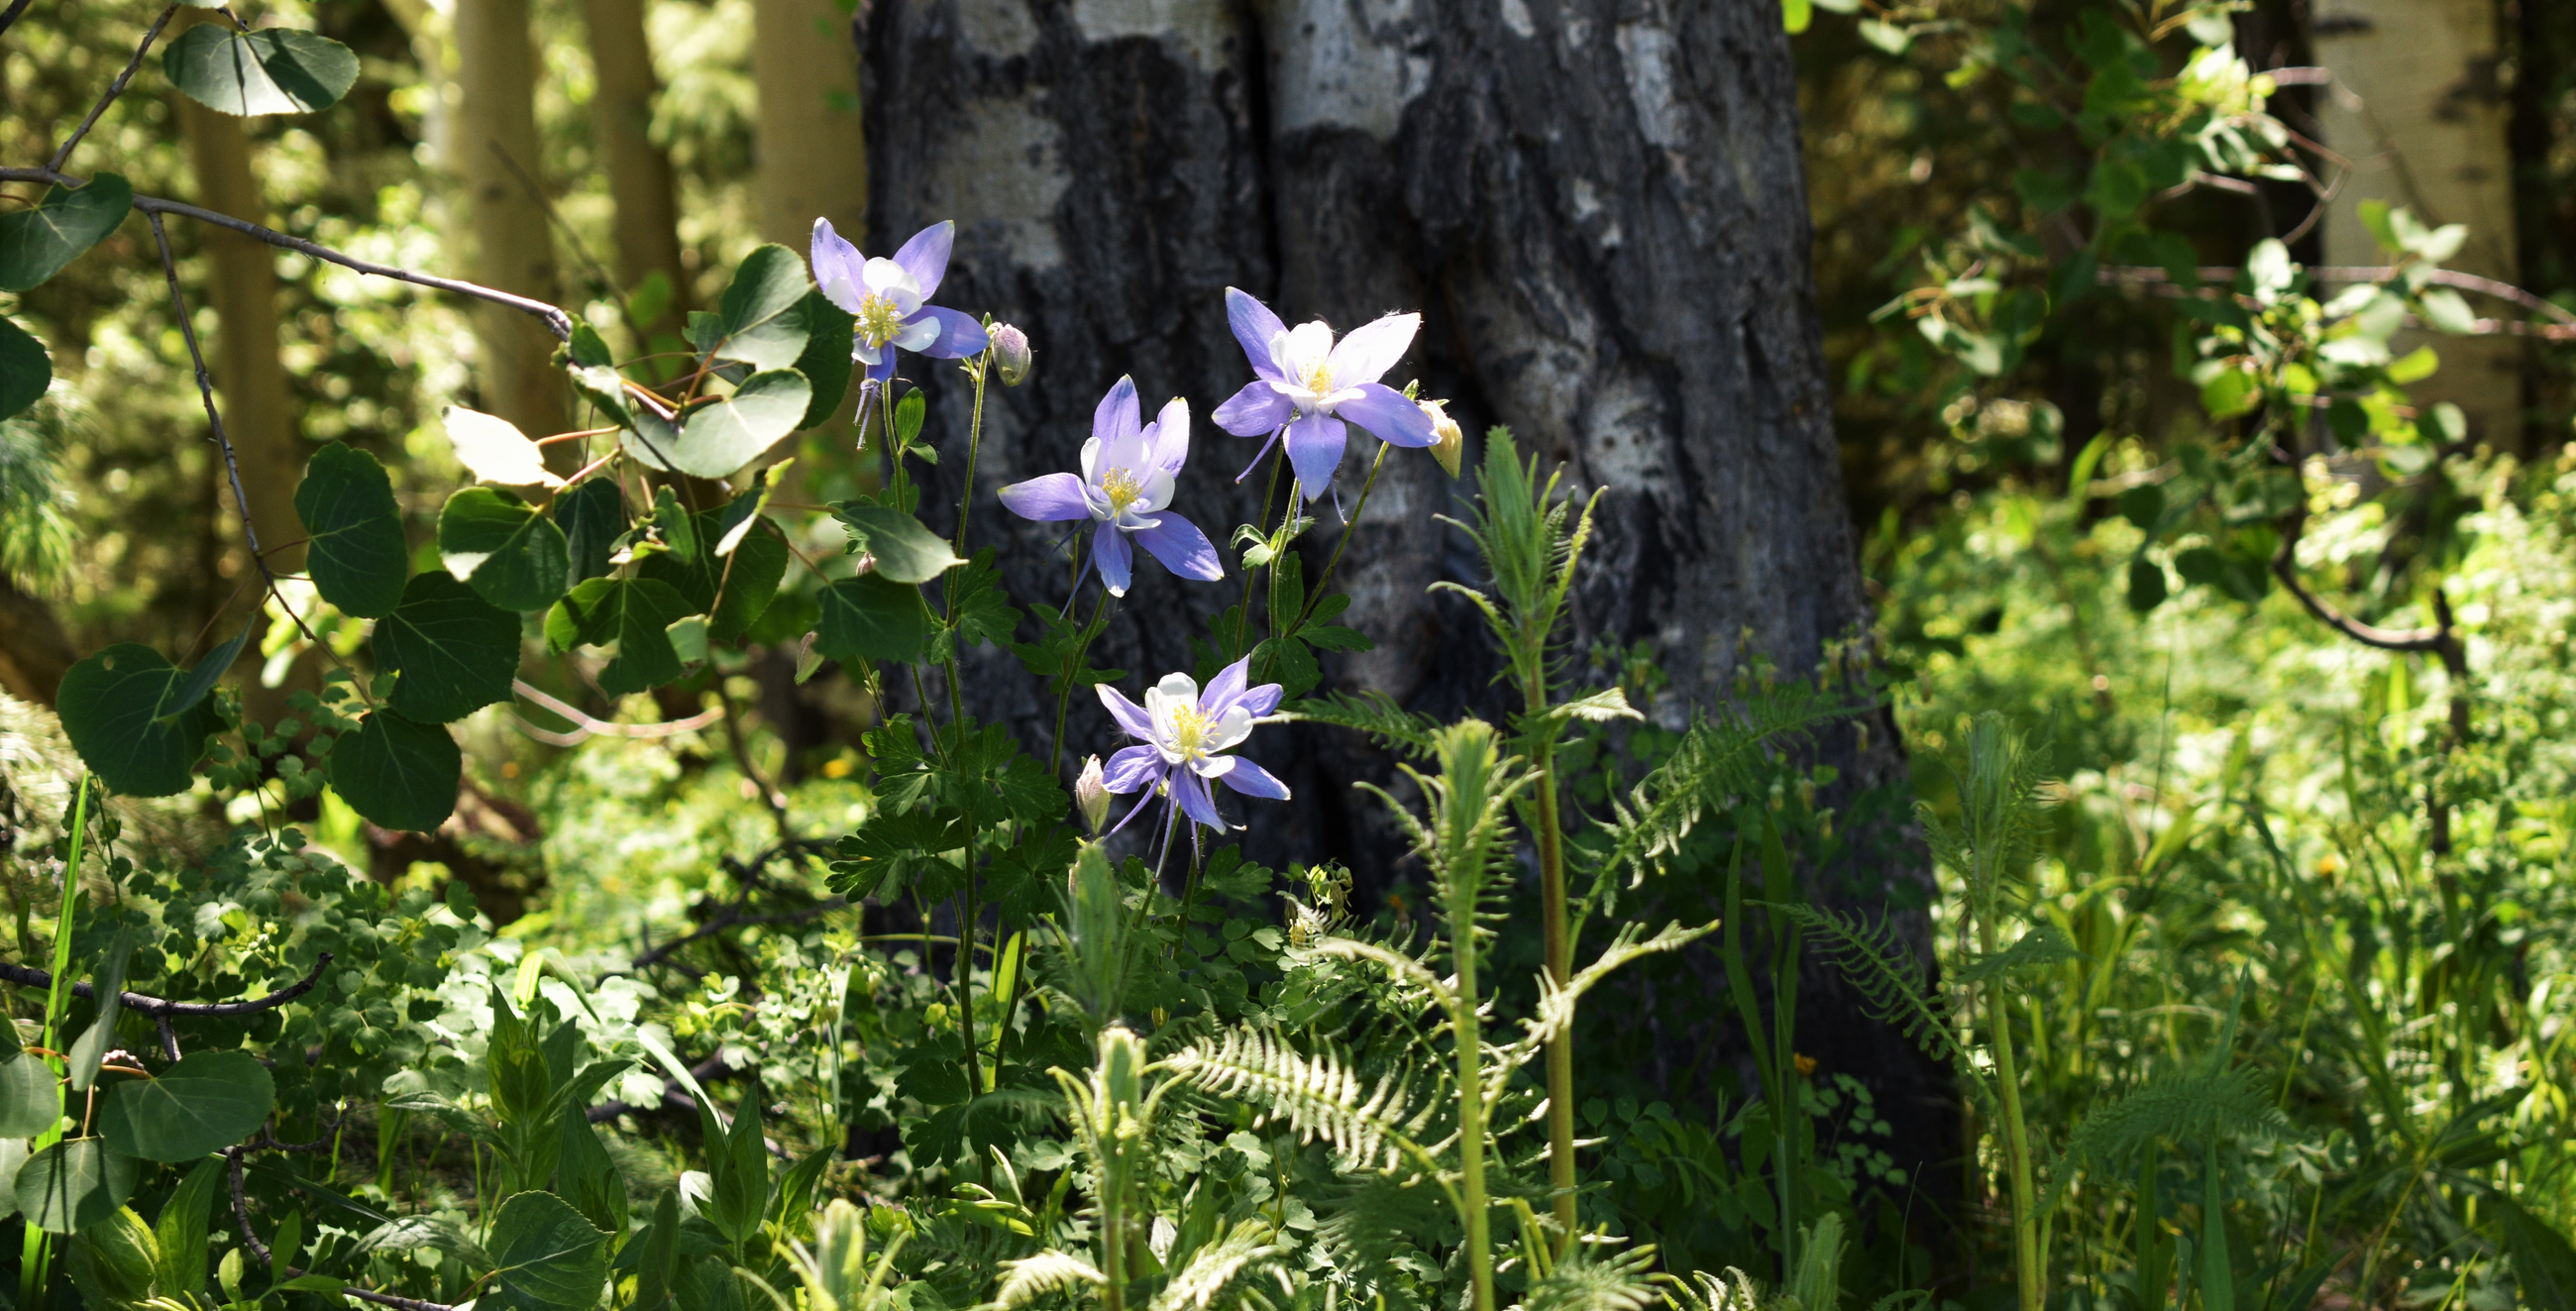 Columbines in the forest near Woods Lake